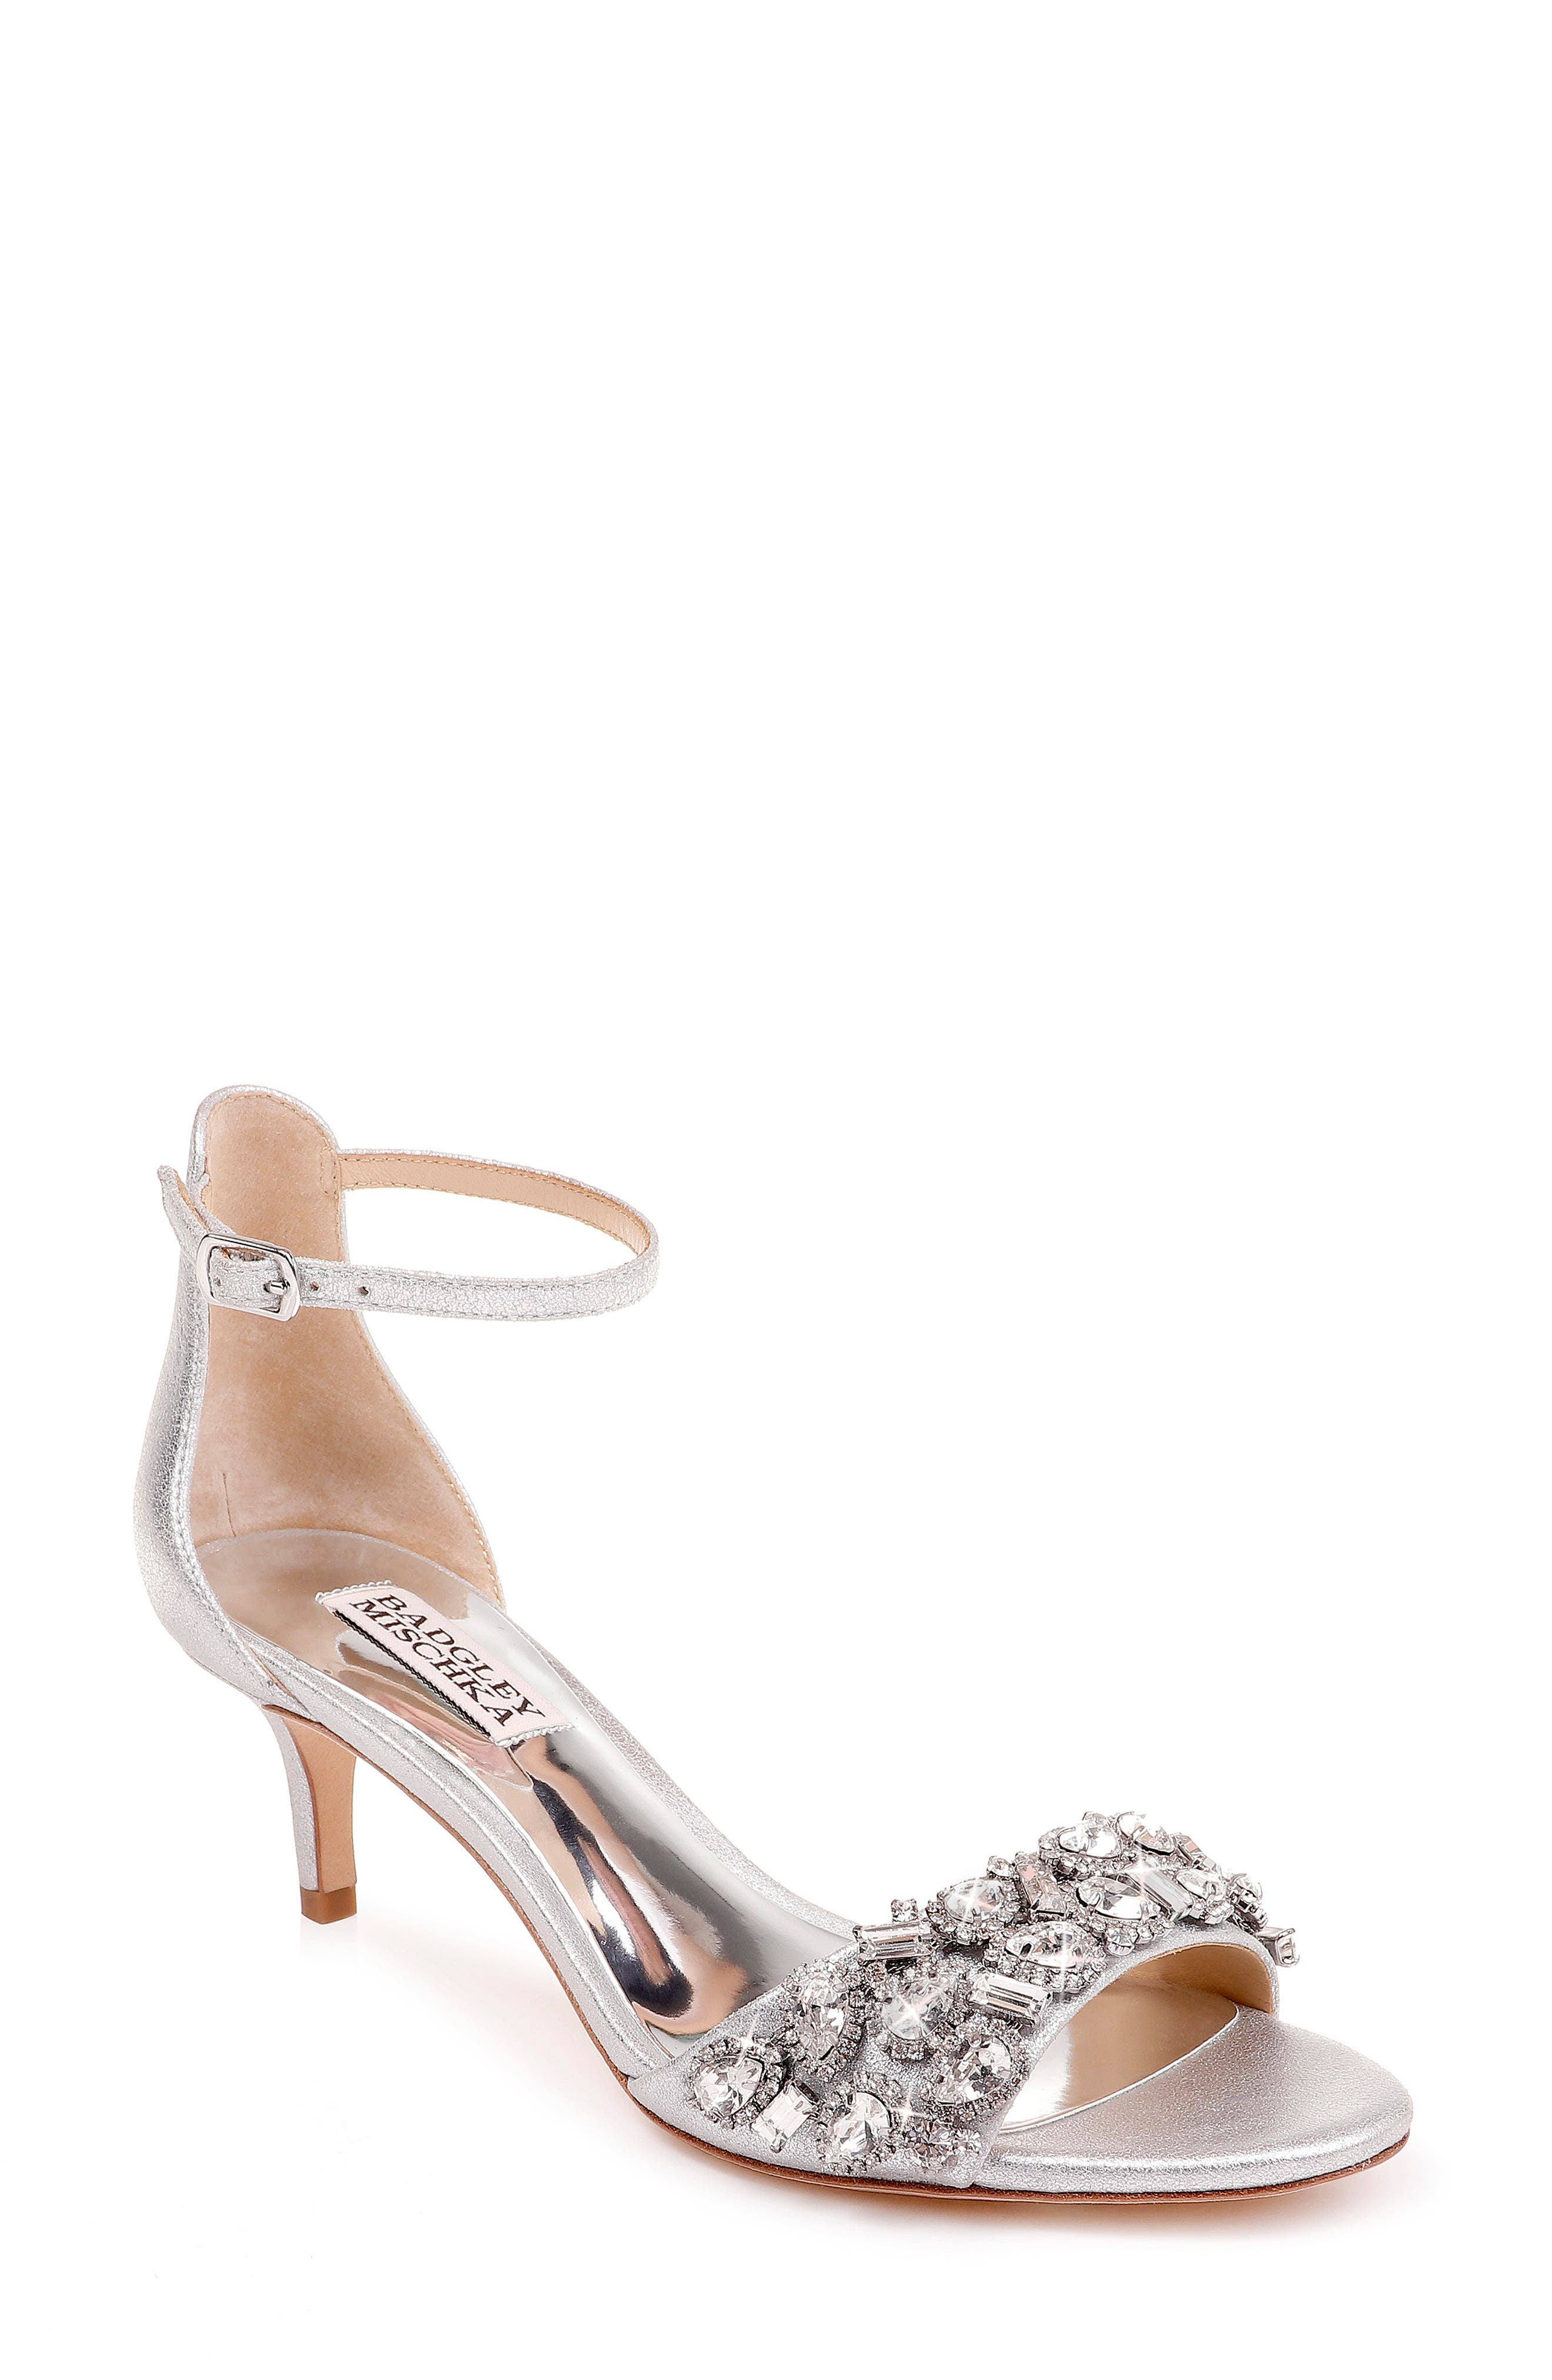 Badgley Mischka Lara Crystal Embellished Sandal- Metallic